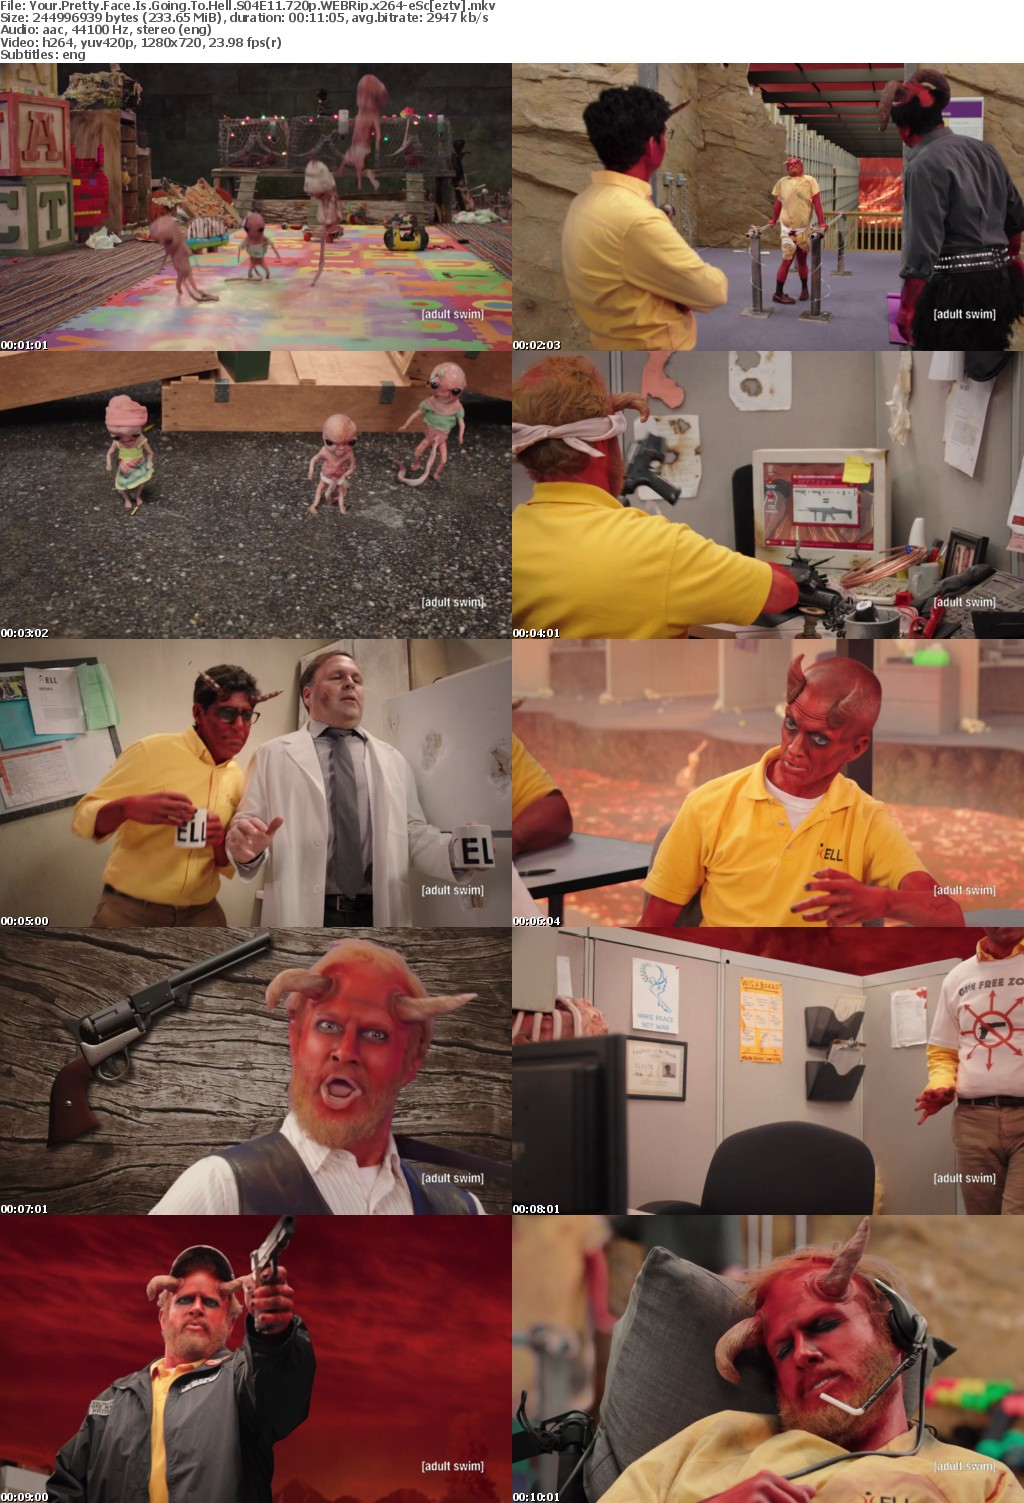 Your Pretty Face Is Going To Hell S04E11 720p WEBRip x264-eSc